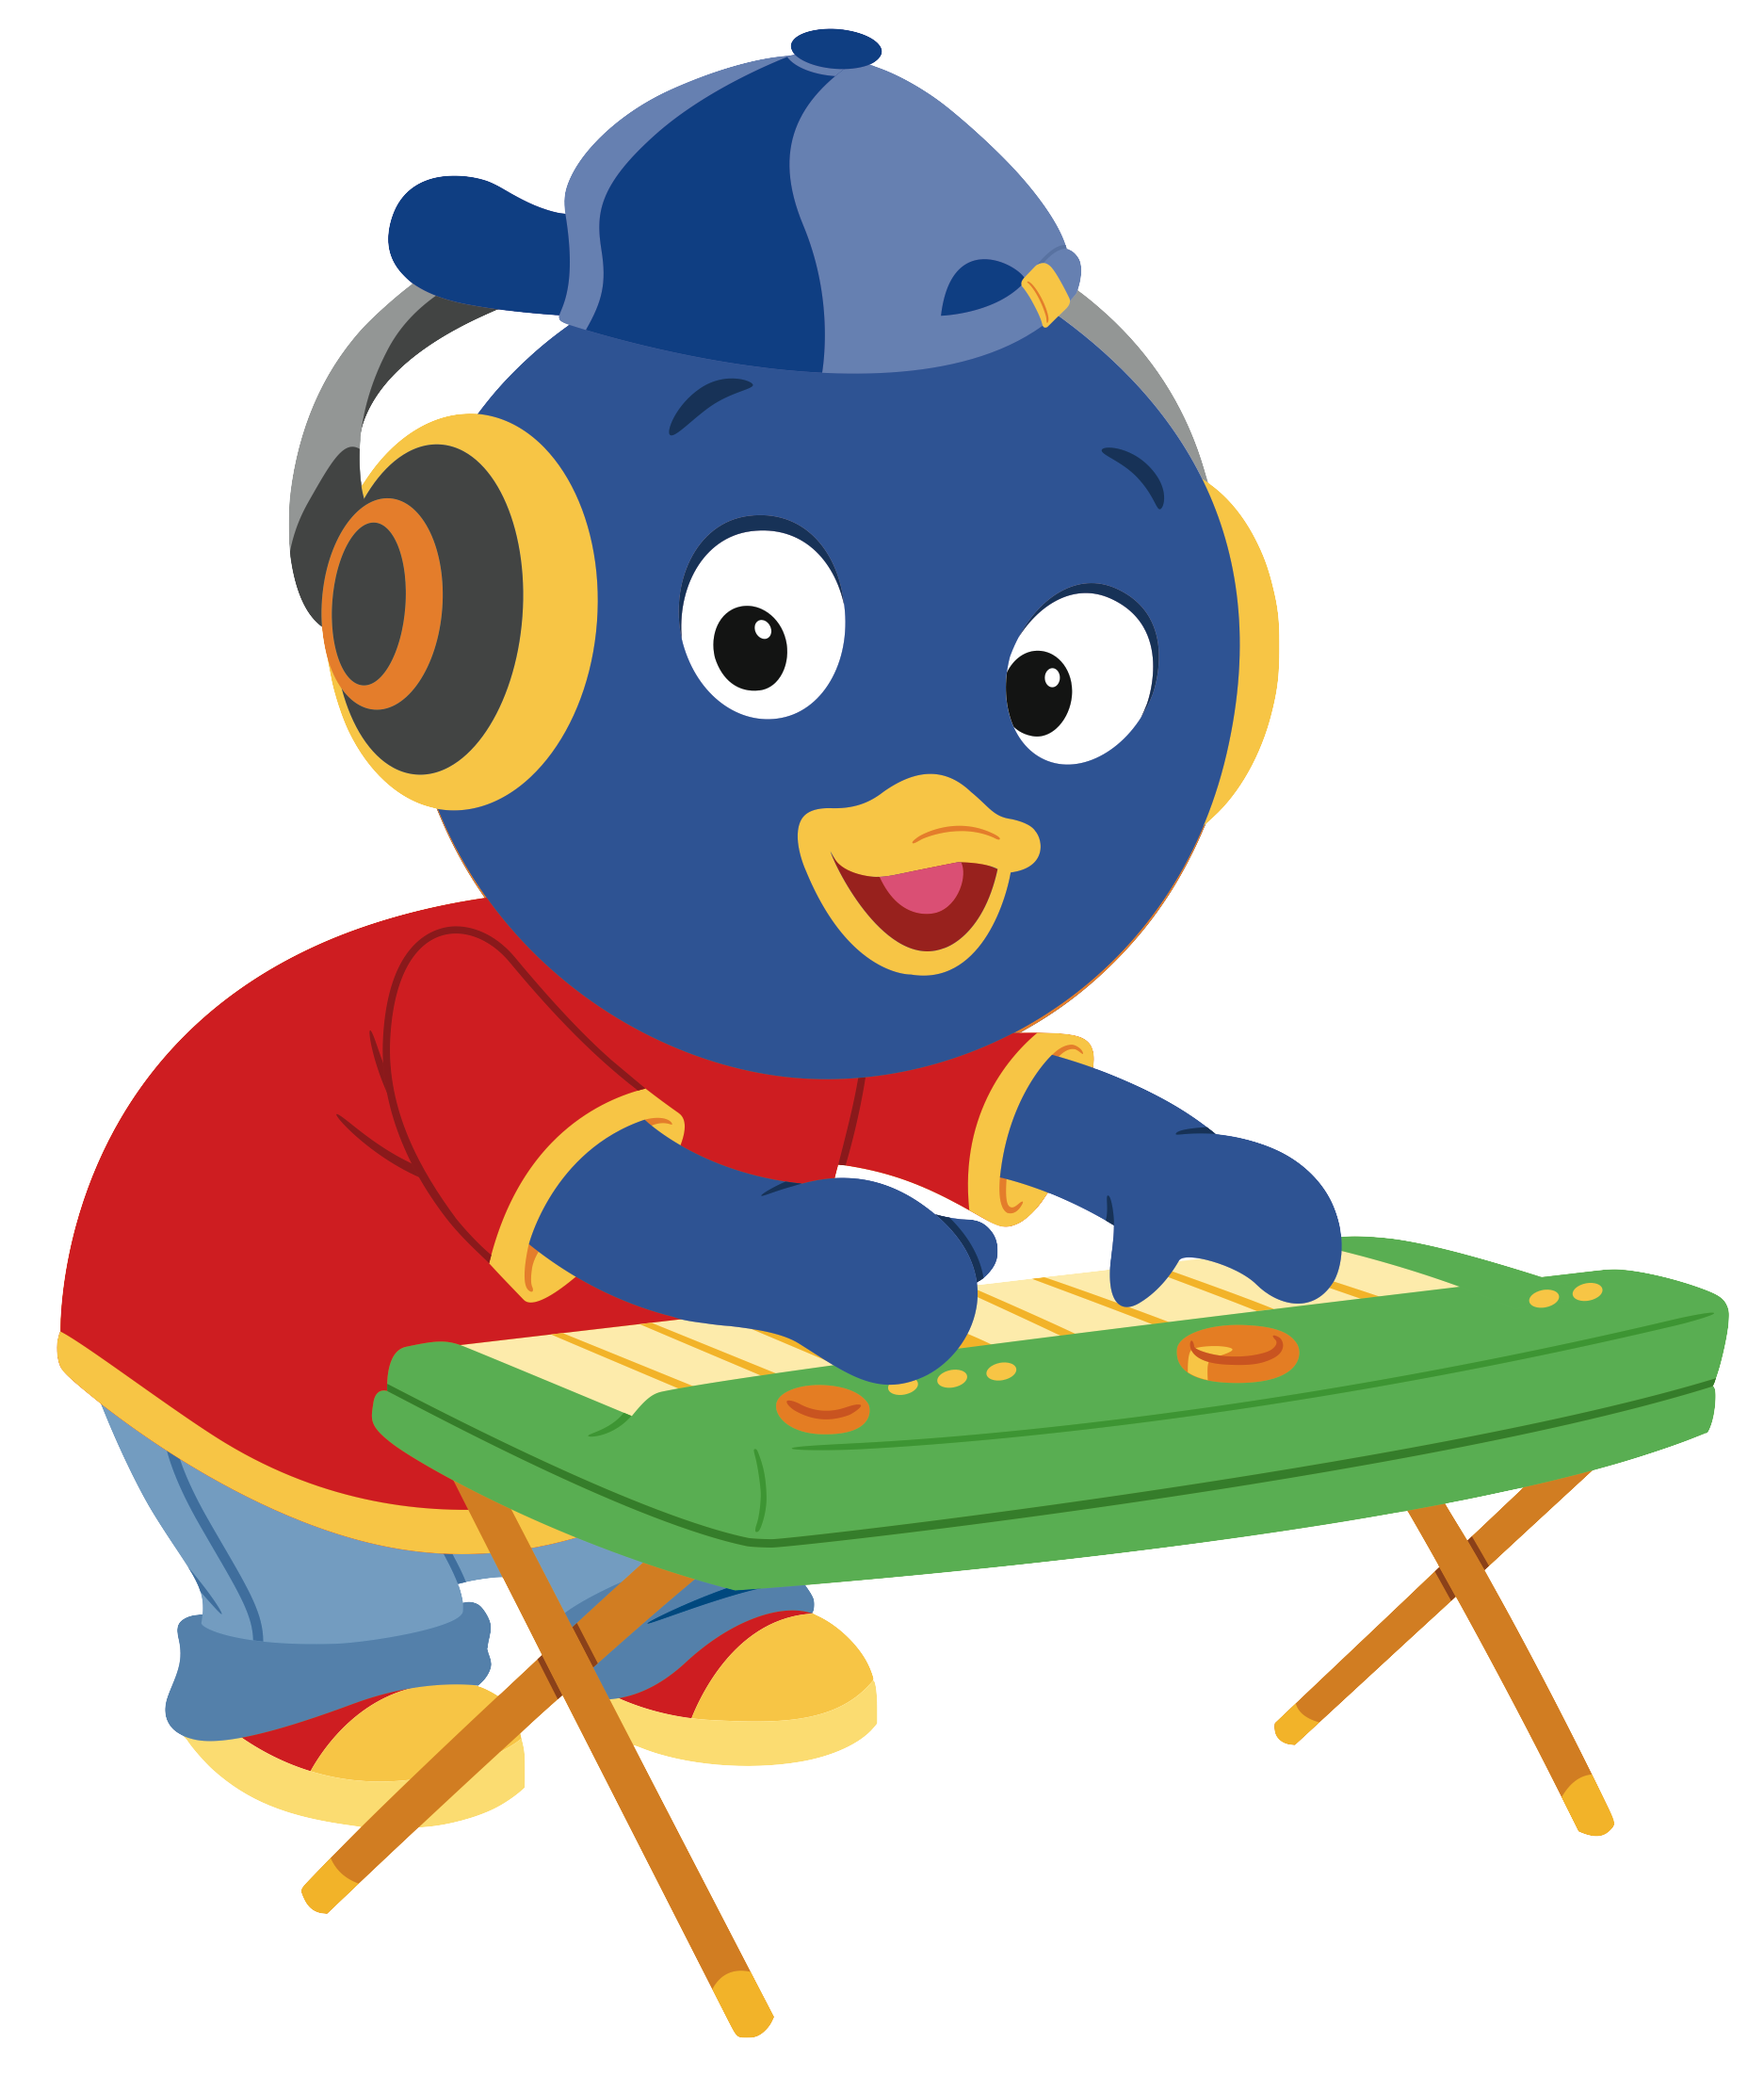 Image - The Backyardigans Let's Play Music! DJ Pablo 3.png | The ...